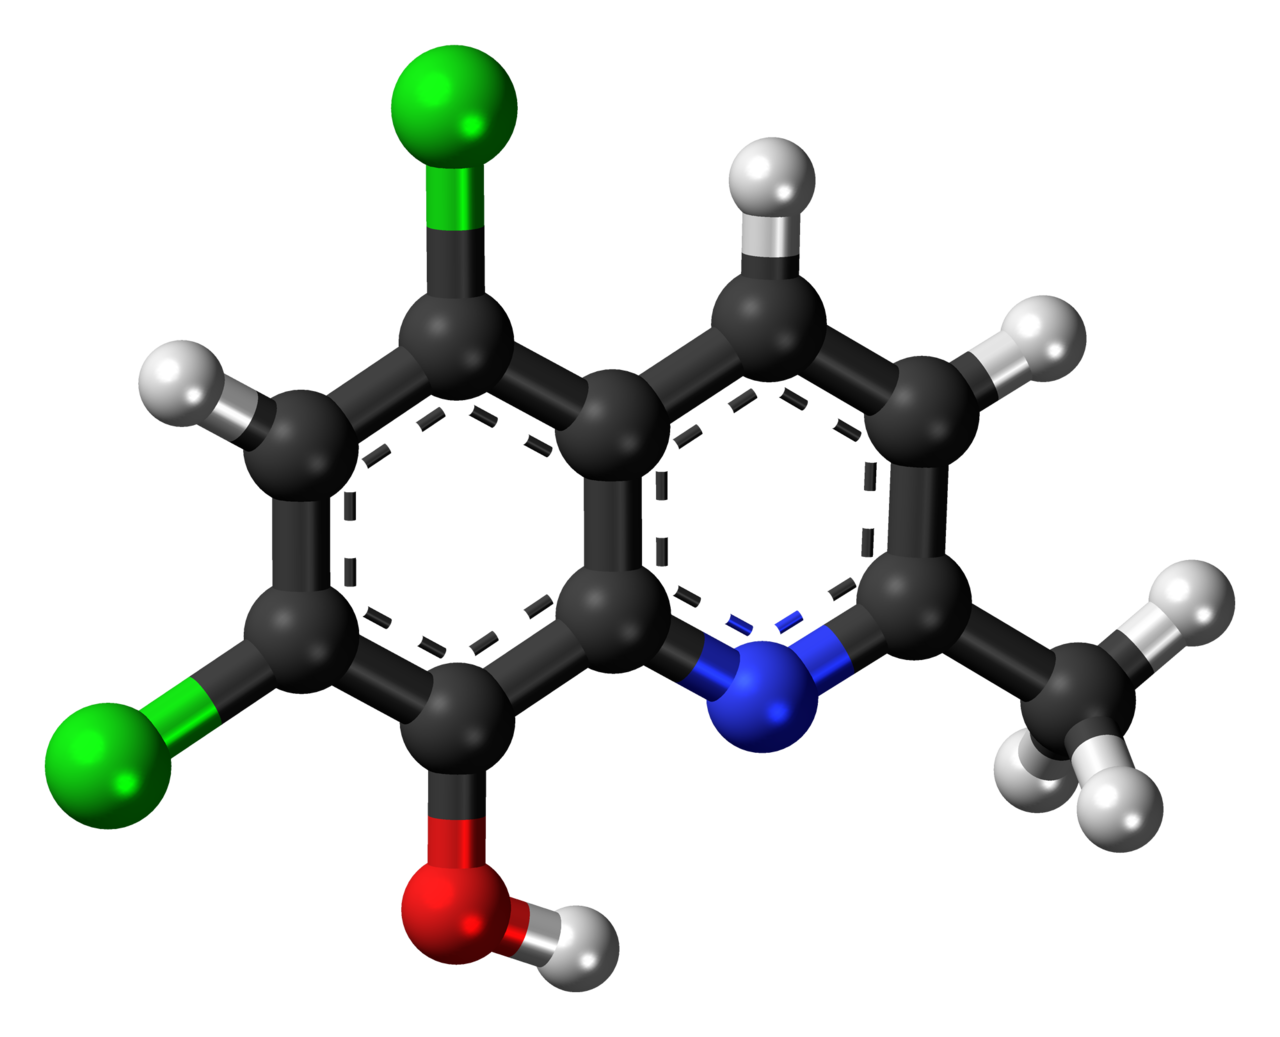 Ball-and-stick model of the chlorquinaldol molecule